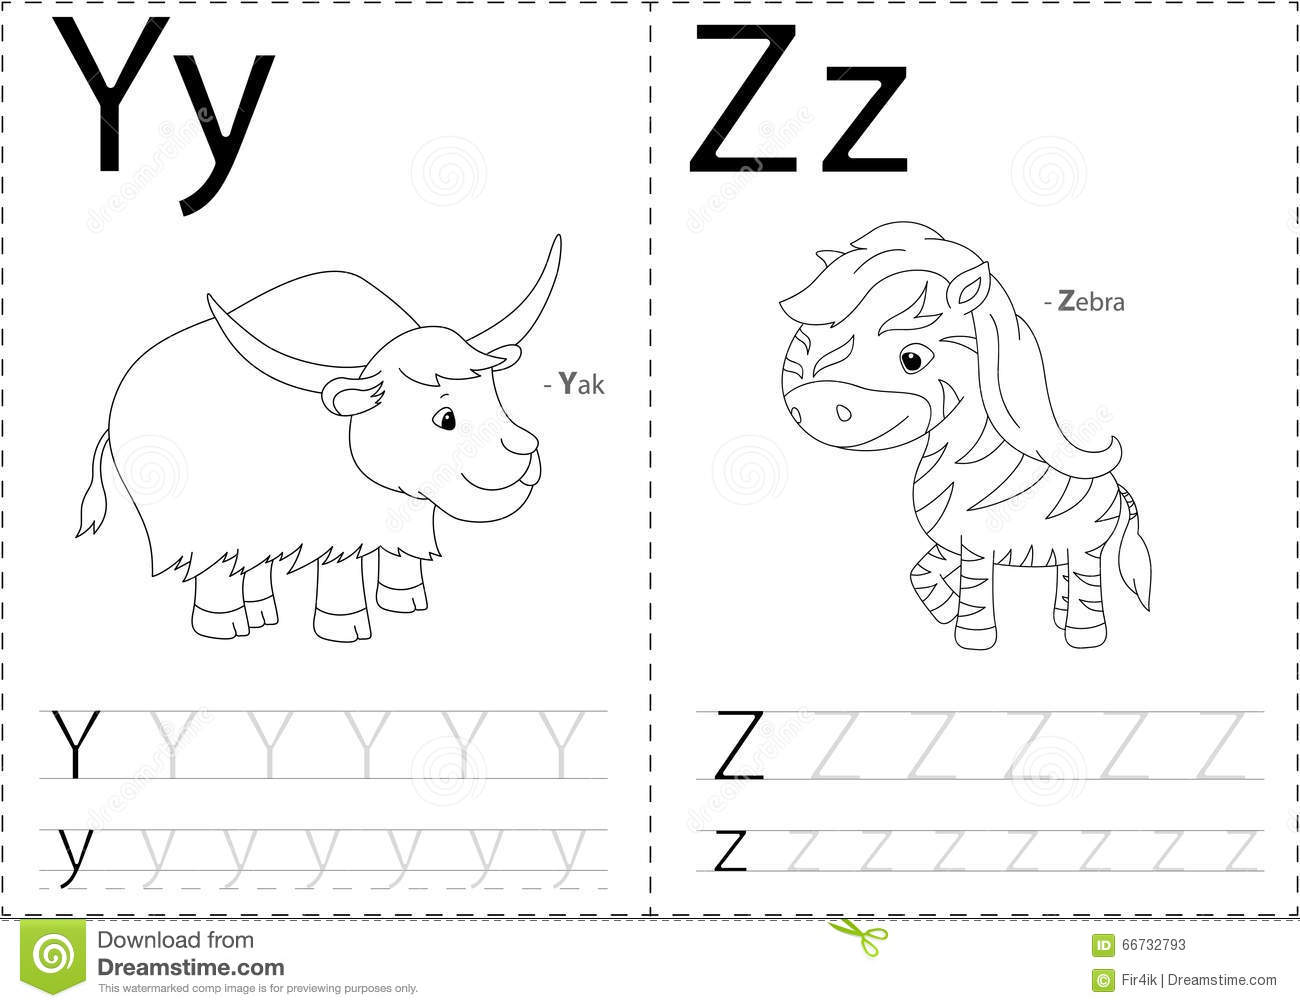 Cartoon Yak And Zebra. Alphabet Tracing Worksheet: Writing